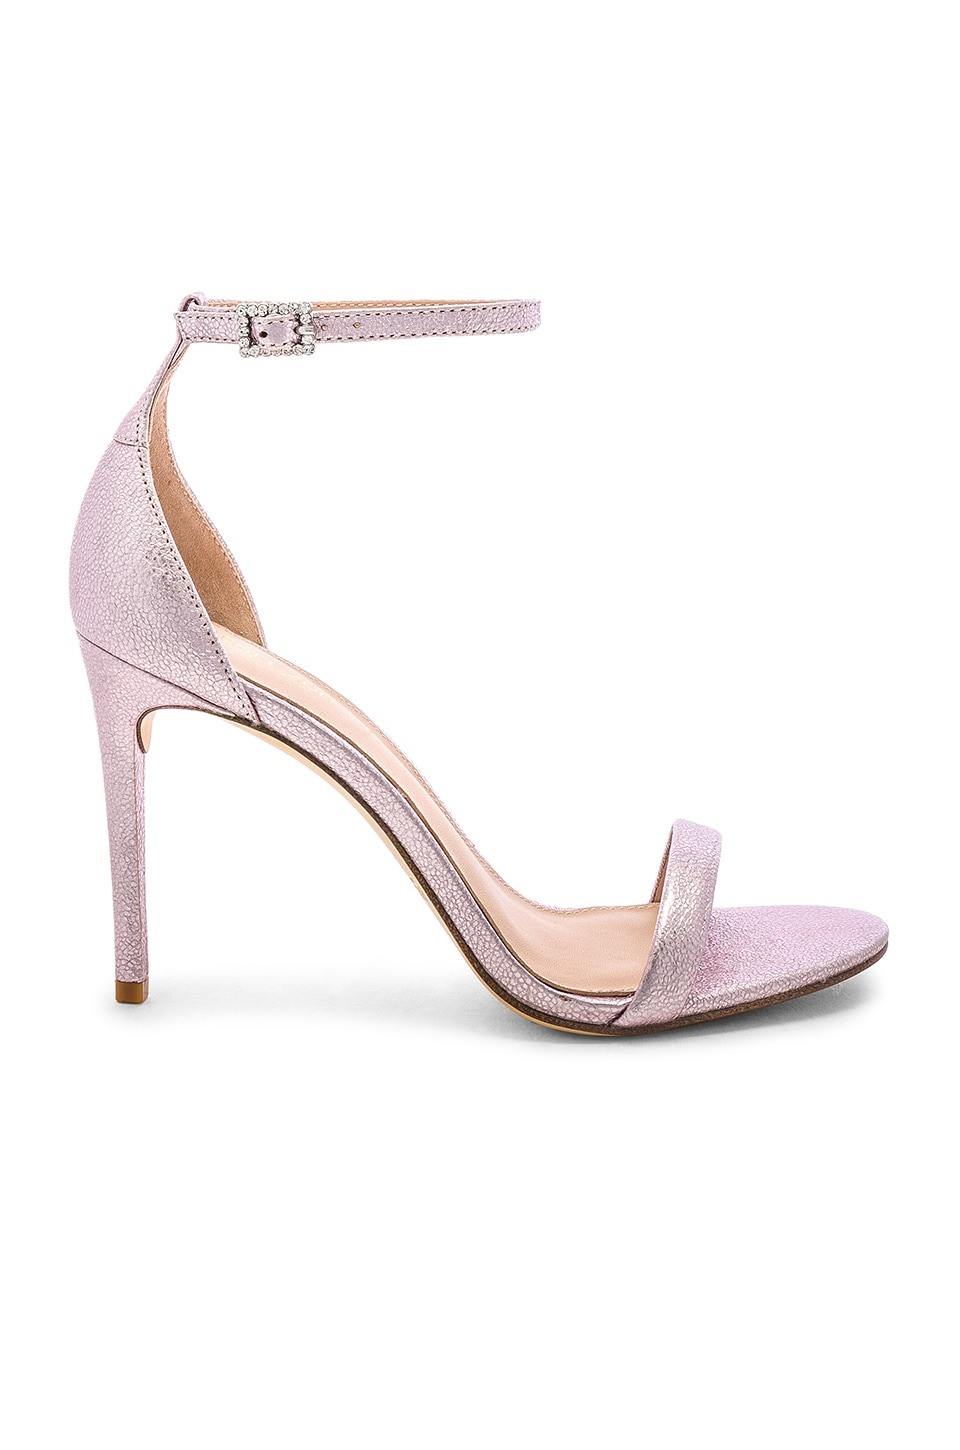 RACHEL ZOE Ema Sandal in Powder